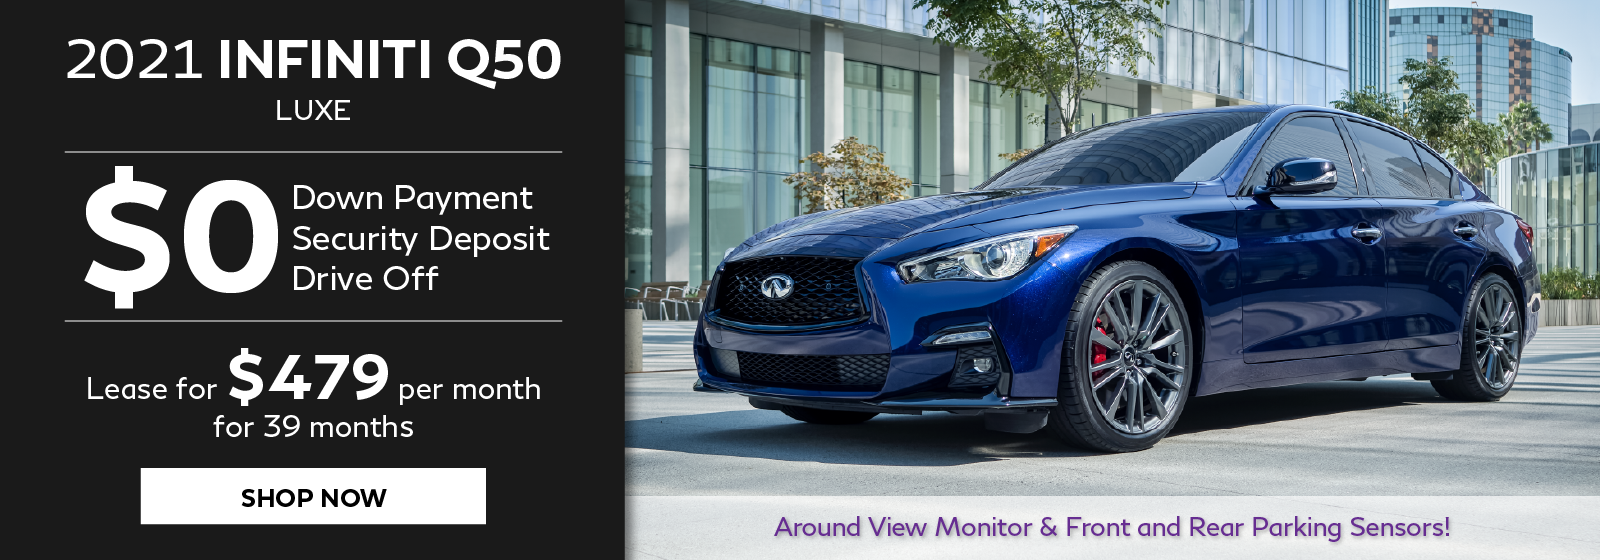 2021 INFINITI Q50 Zero down leases. Click to shop now.